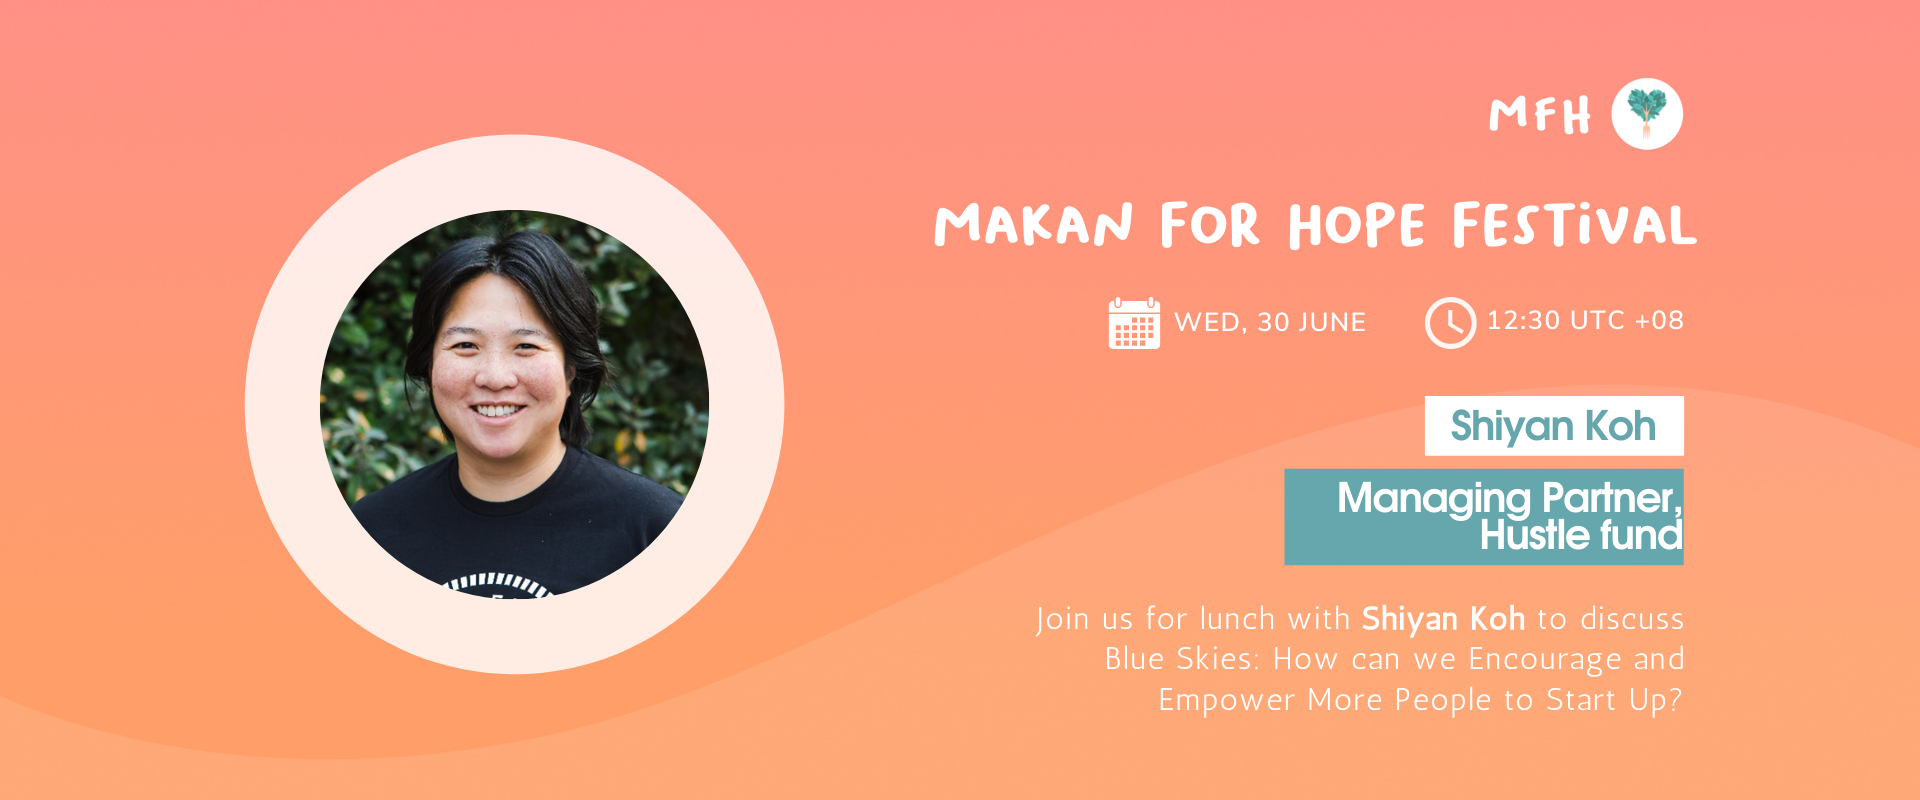 Shiyan Koh - Blue Skies: How can We Encourage and Empower More People to Start Up? Banner Image